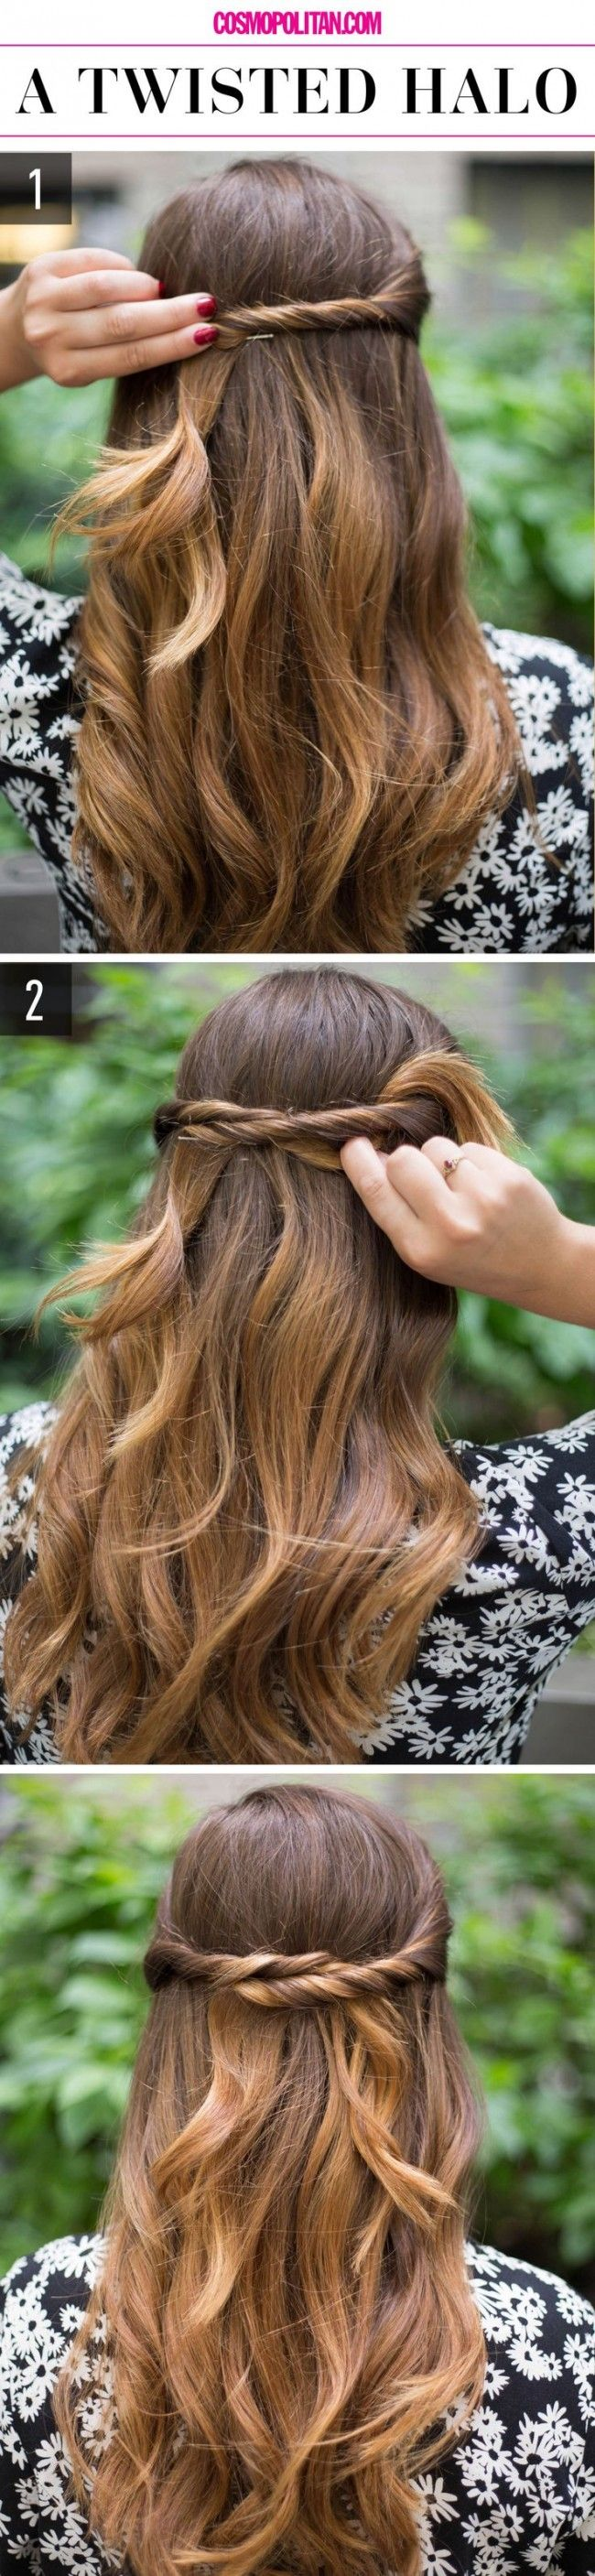 15 Super-Easy Hairstyles for Lazy Girls Who Can't Even   - Cosmopolitan.com #super